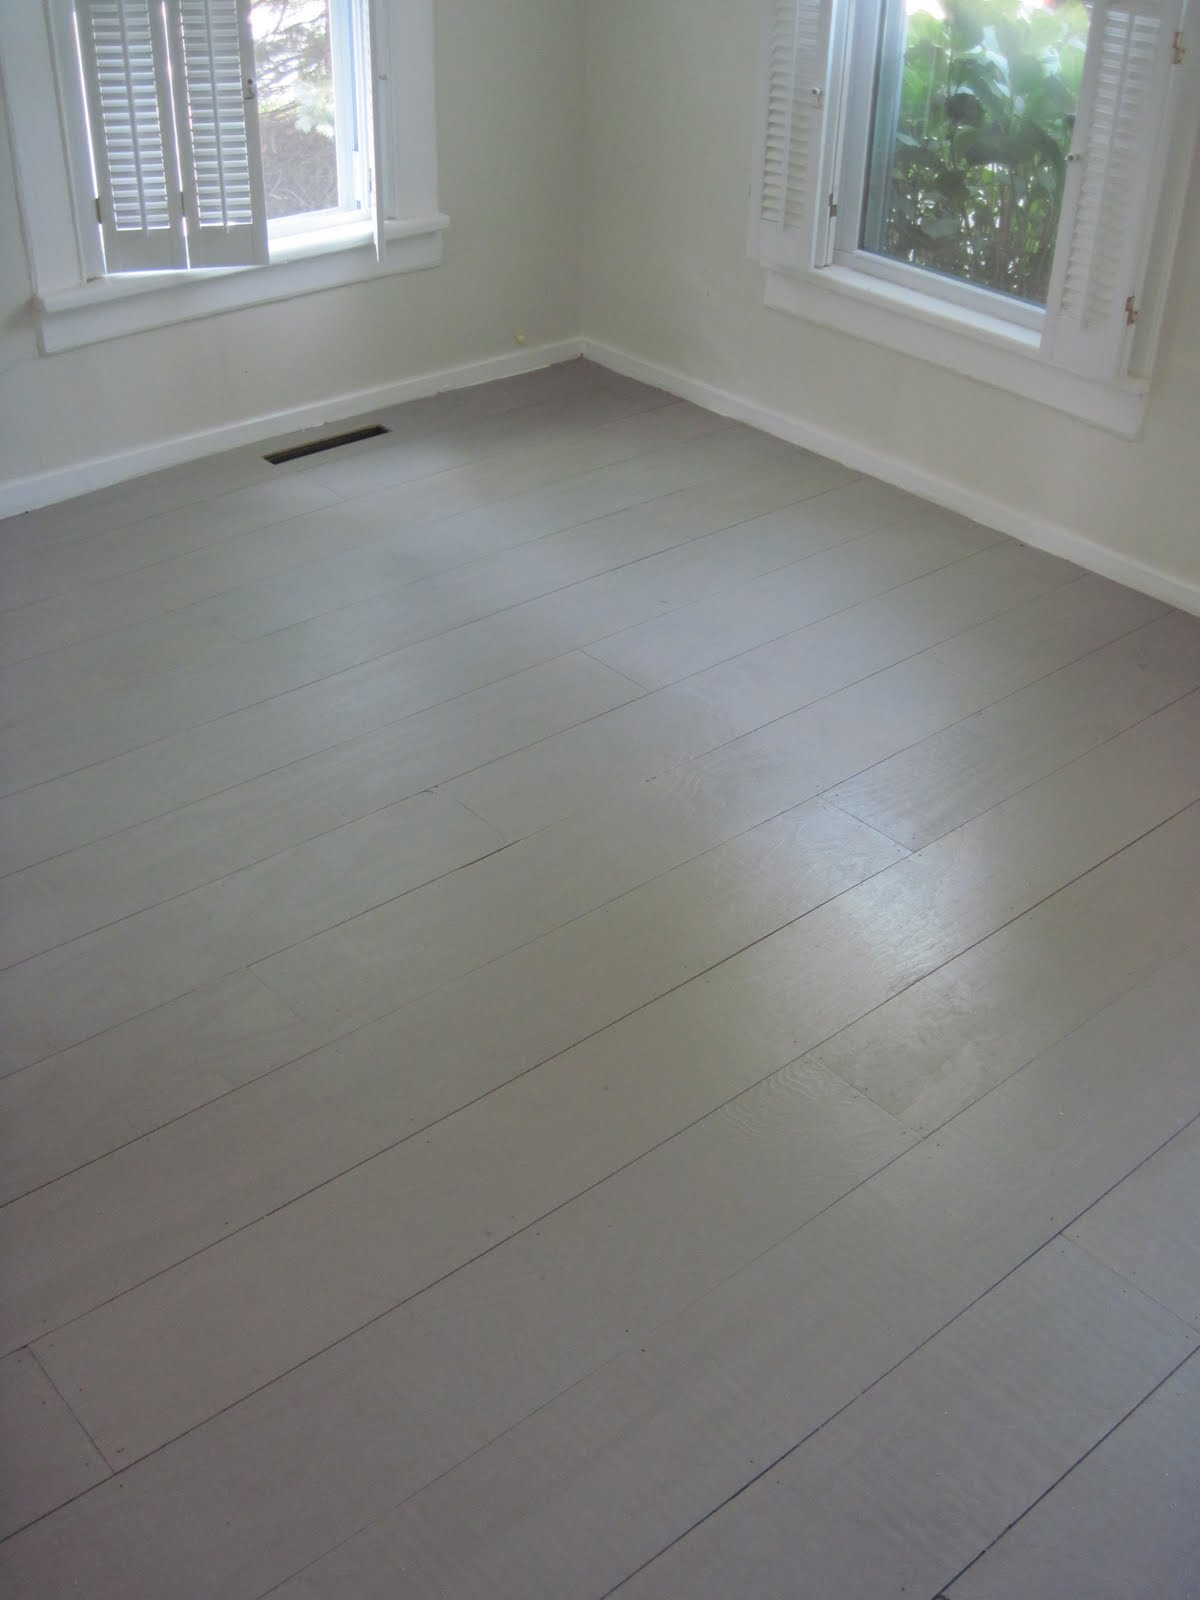 My galician garden plywood flooring for Cheap diy flooring ideas